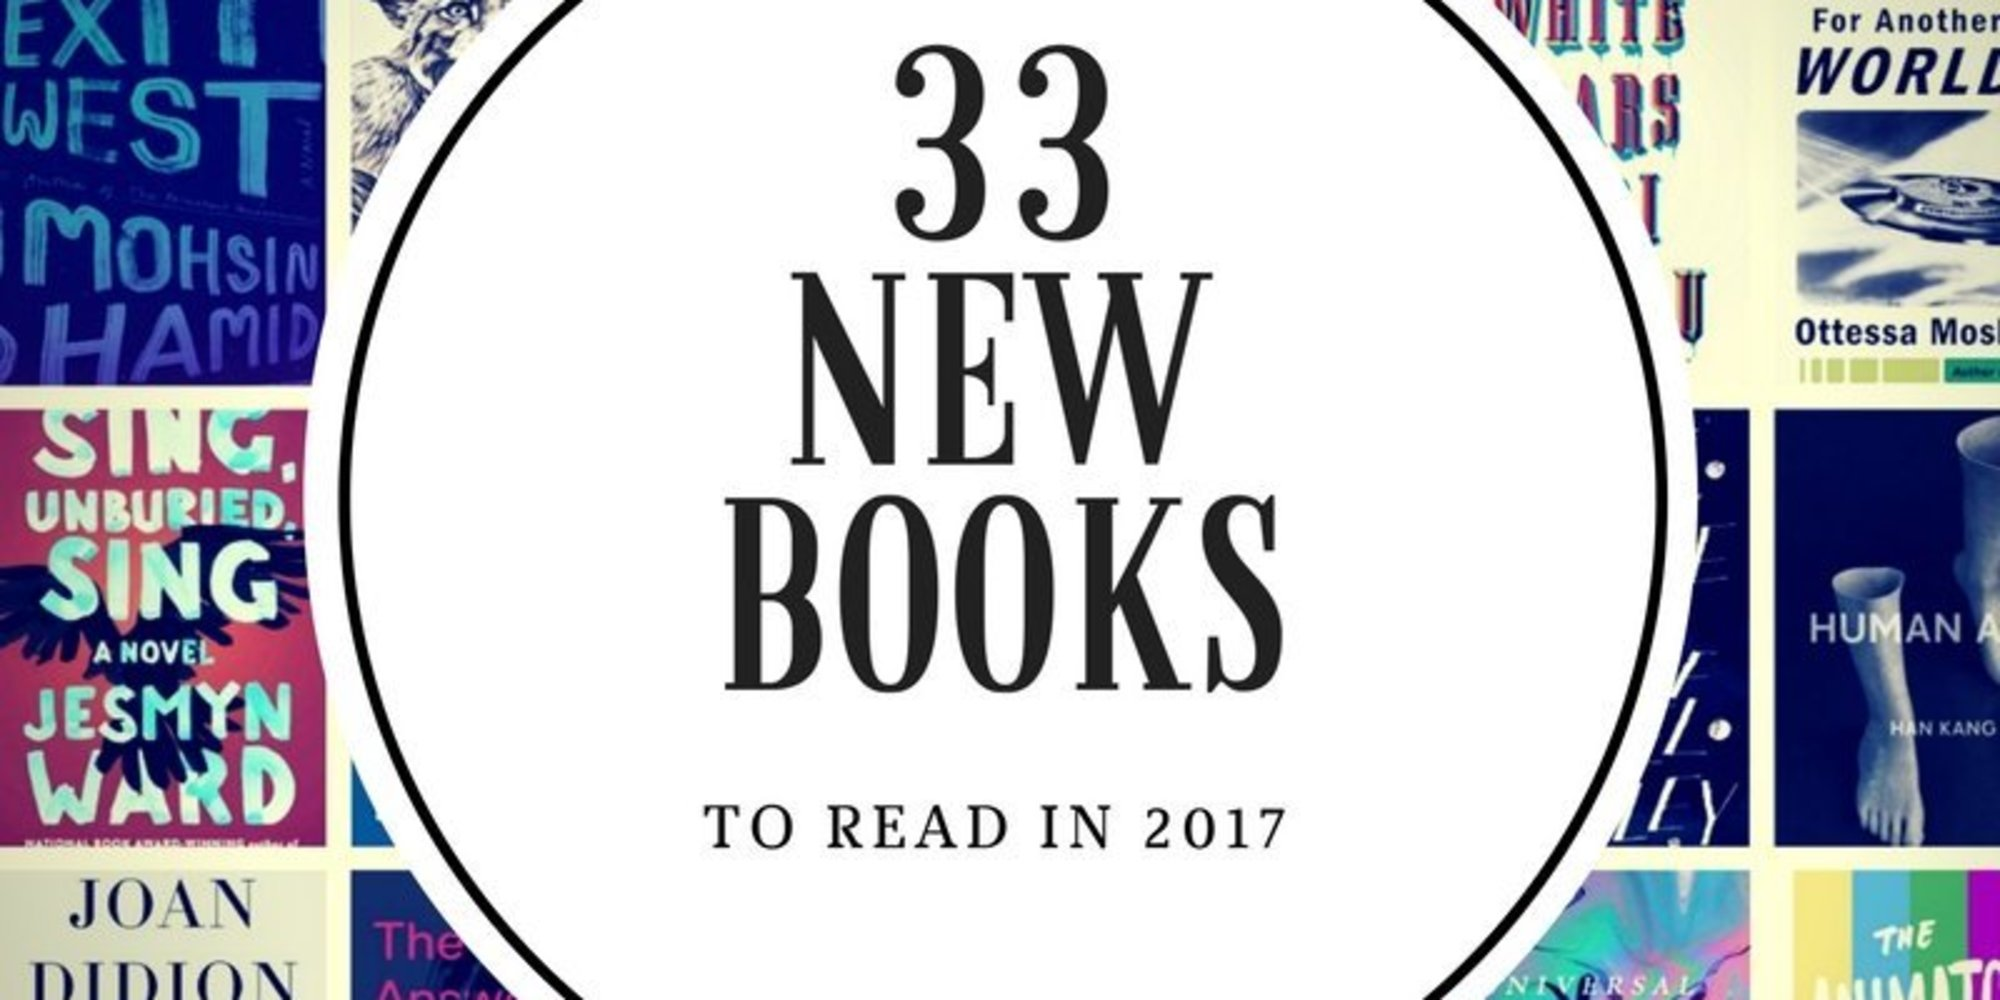 The 33 New Books You'll Want To Add To Your Shelf Next Year